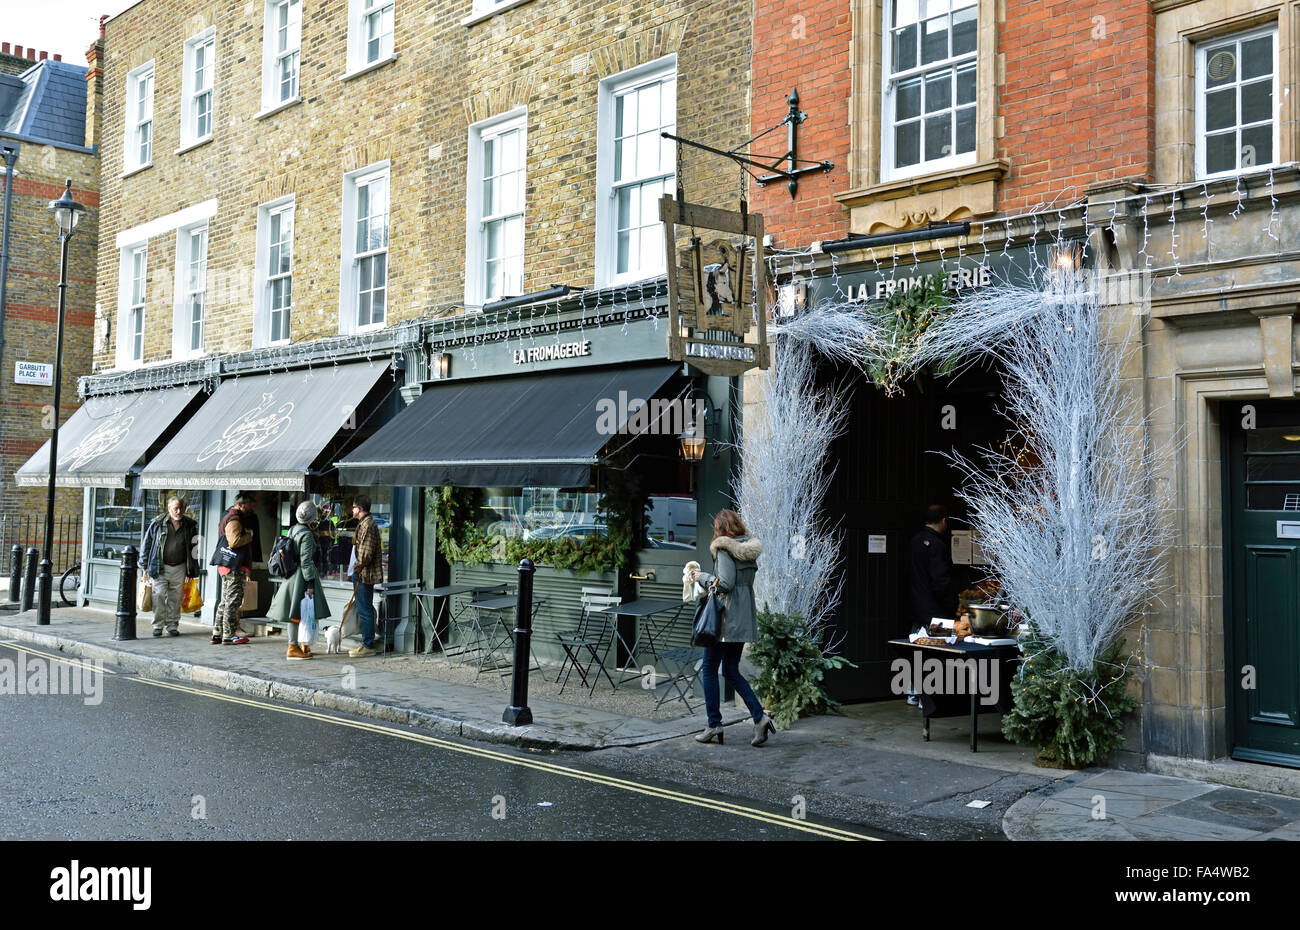 Shops including La Fromagerie and people Moxon Street Marylebone London England Britain UK - Stock Image